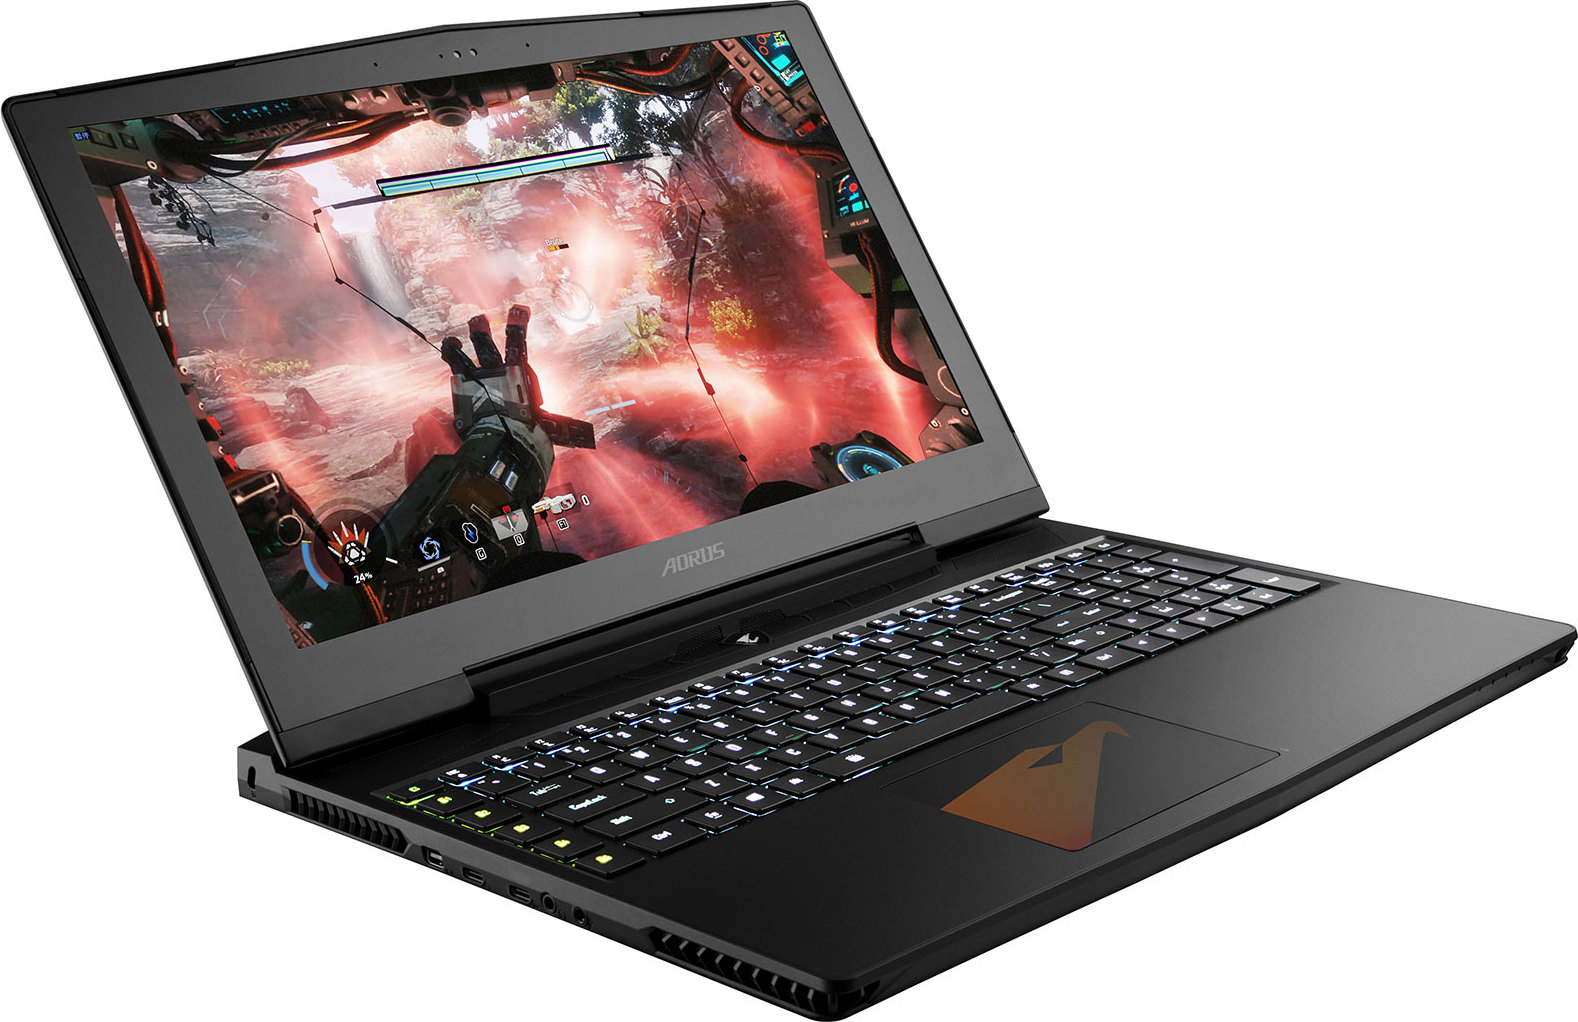 test gigabyte aorus x5 un pc portable taill pour le gaming fiche technique prix et date de. Black Bedroom Furniture Sets. Home Design Ideas